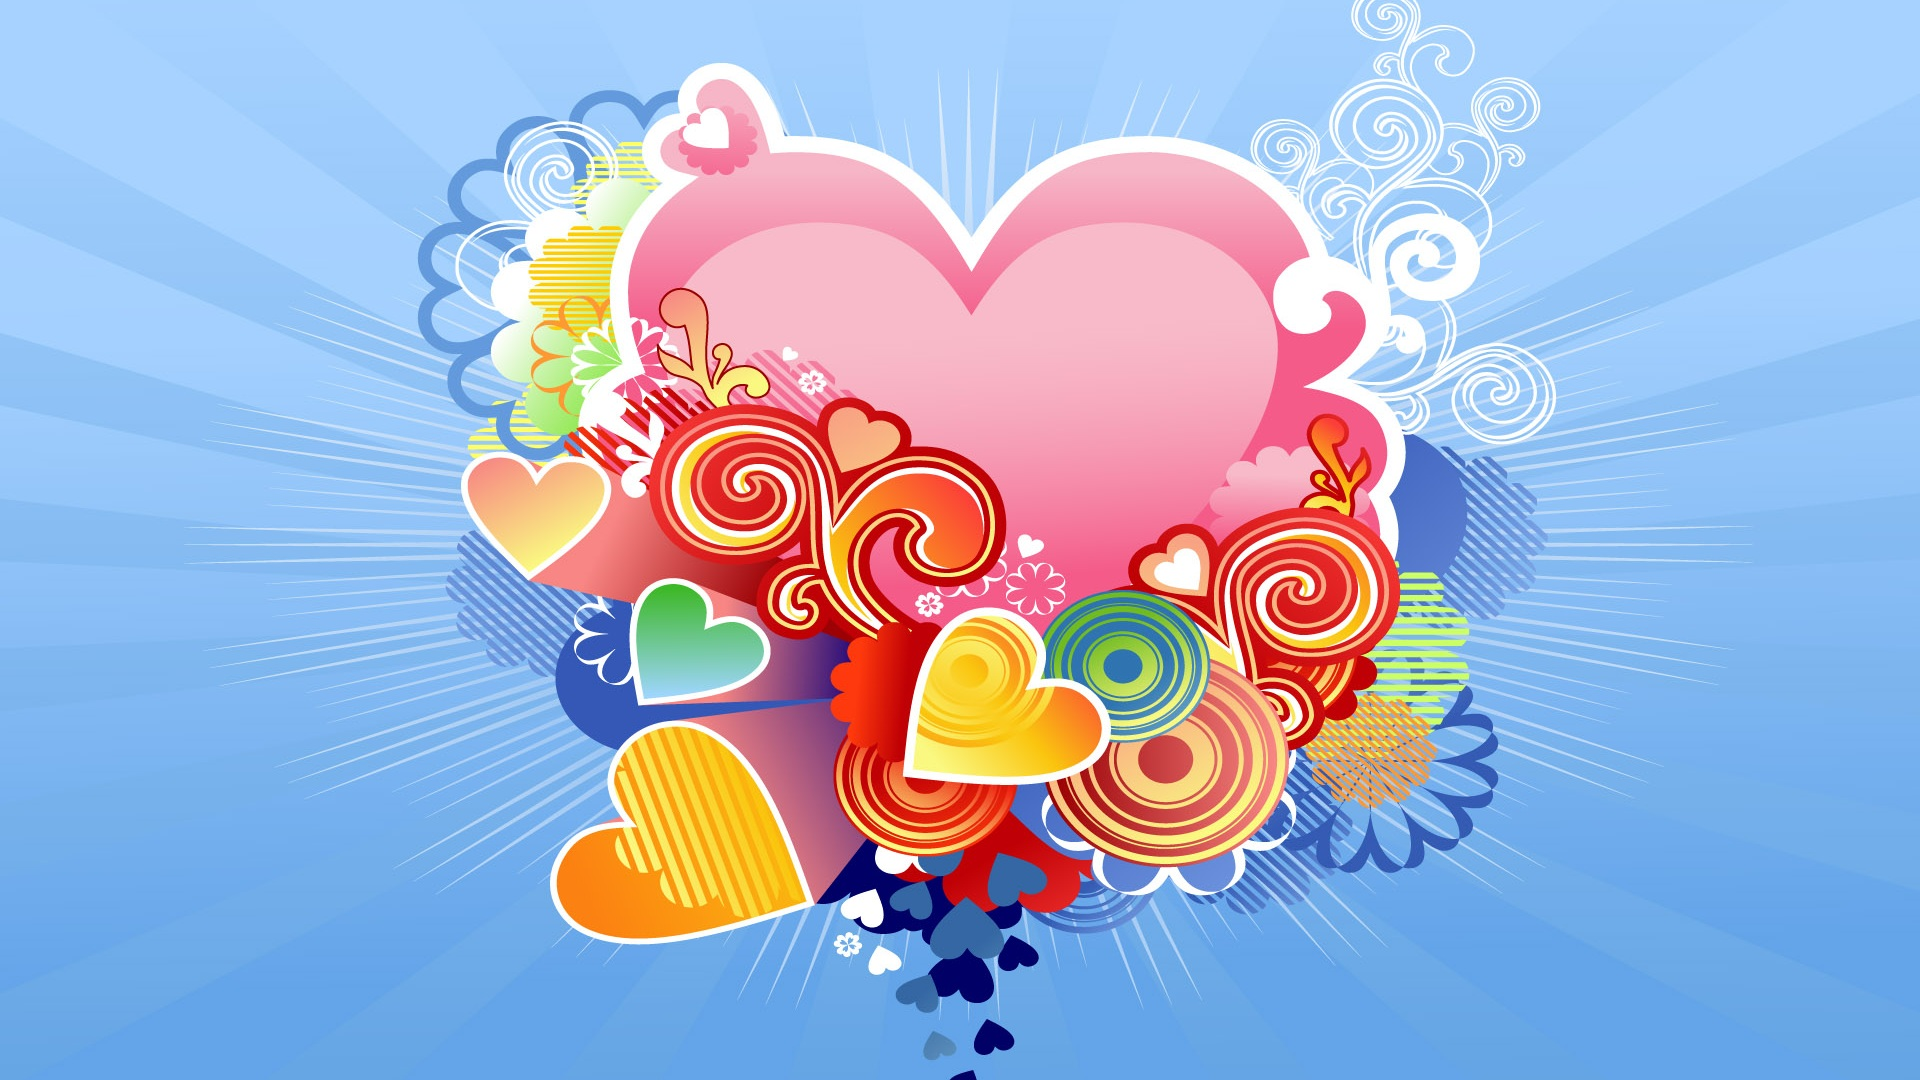 Love-heart-shaped-blue-background_1920x1080